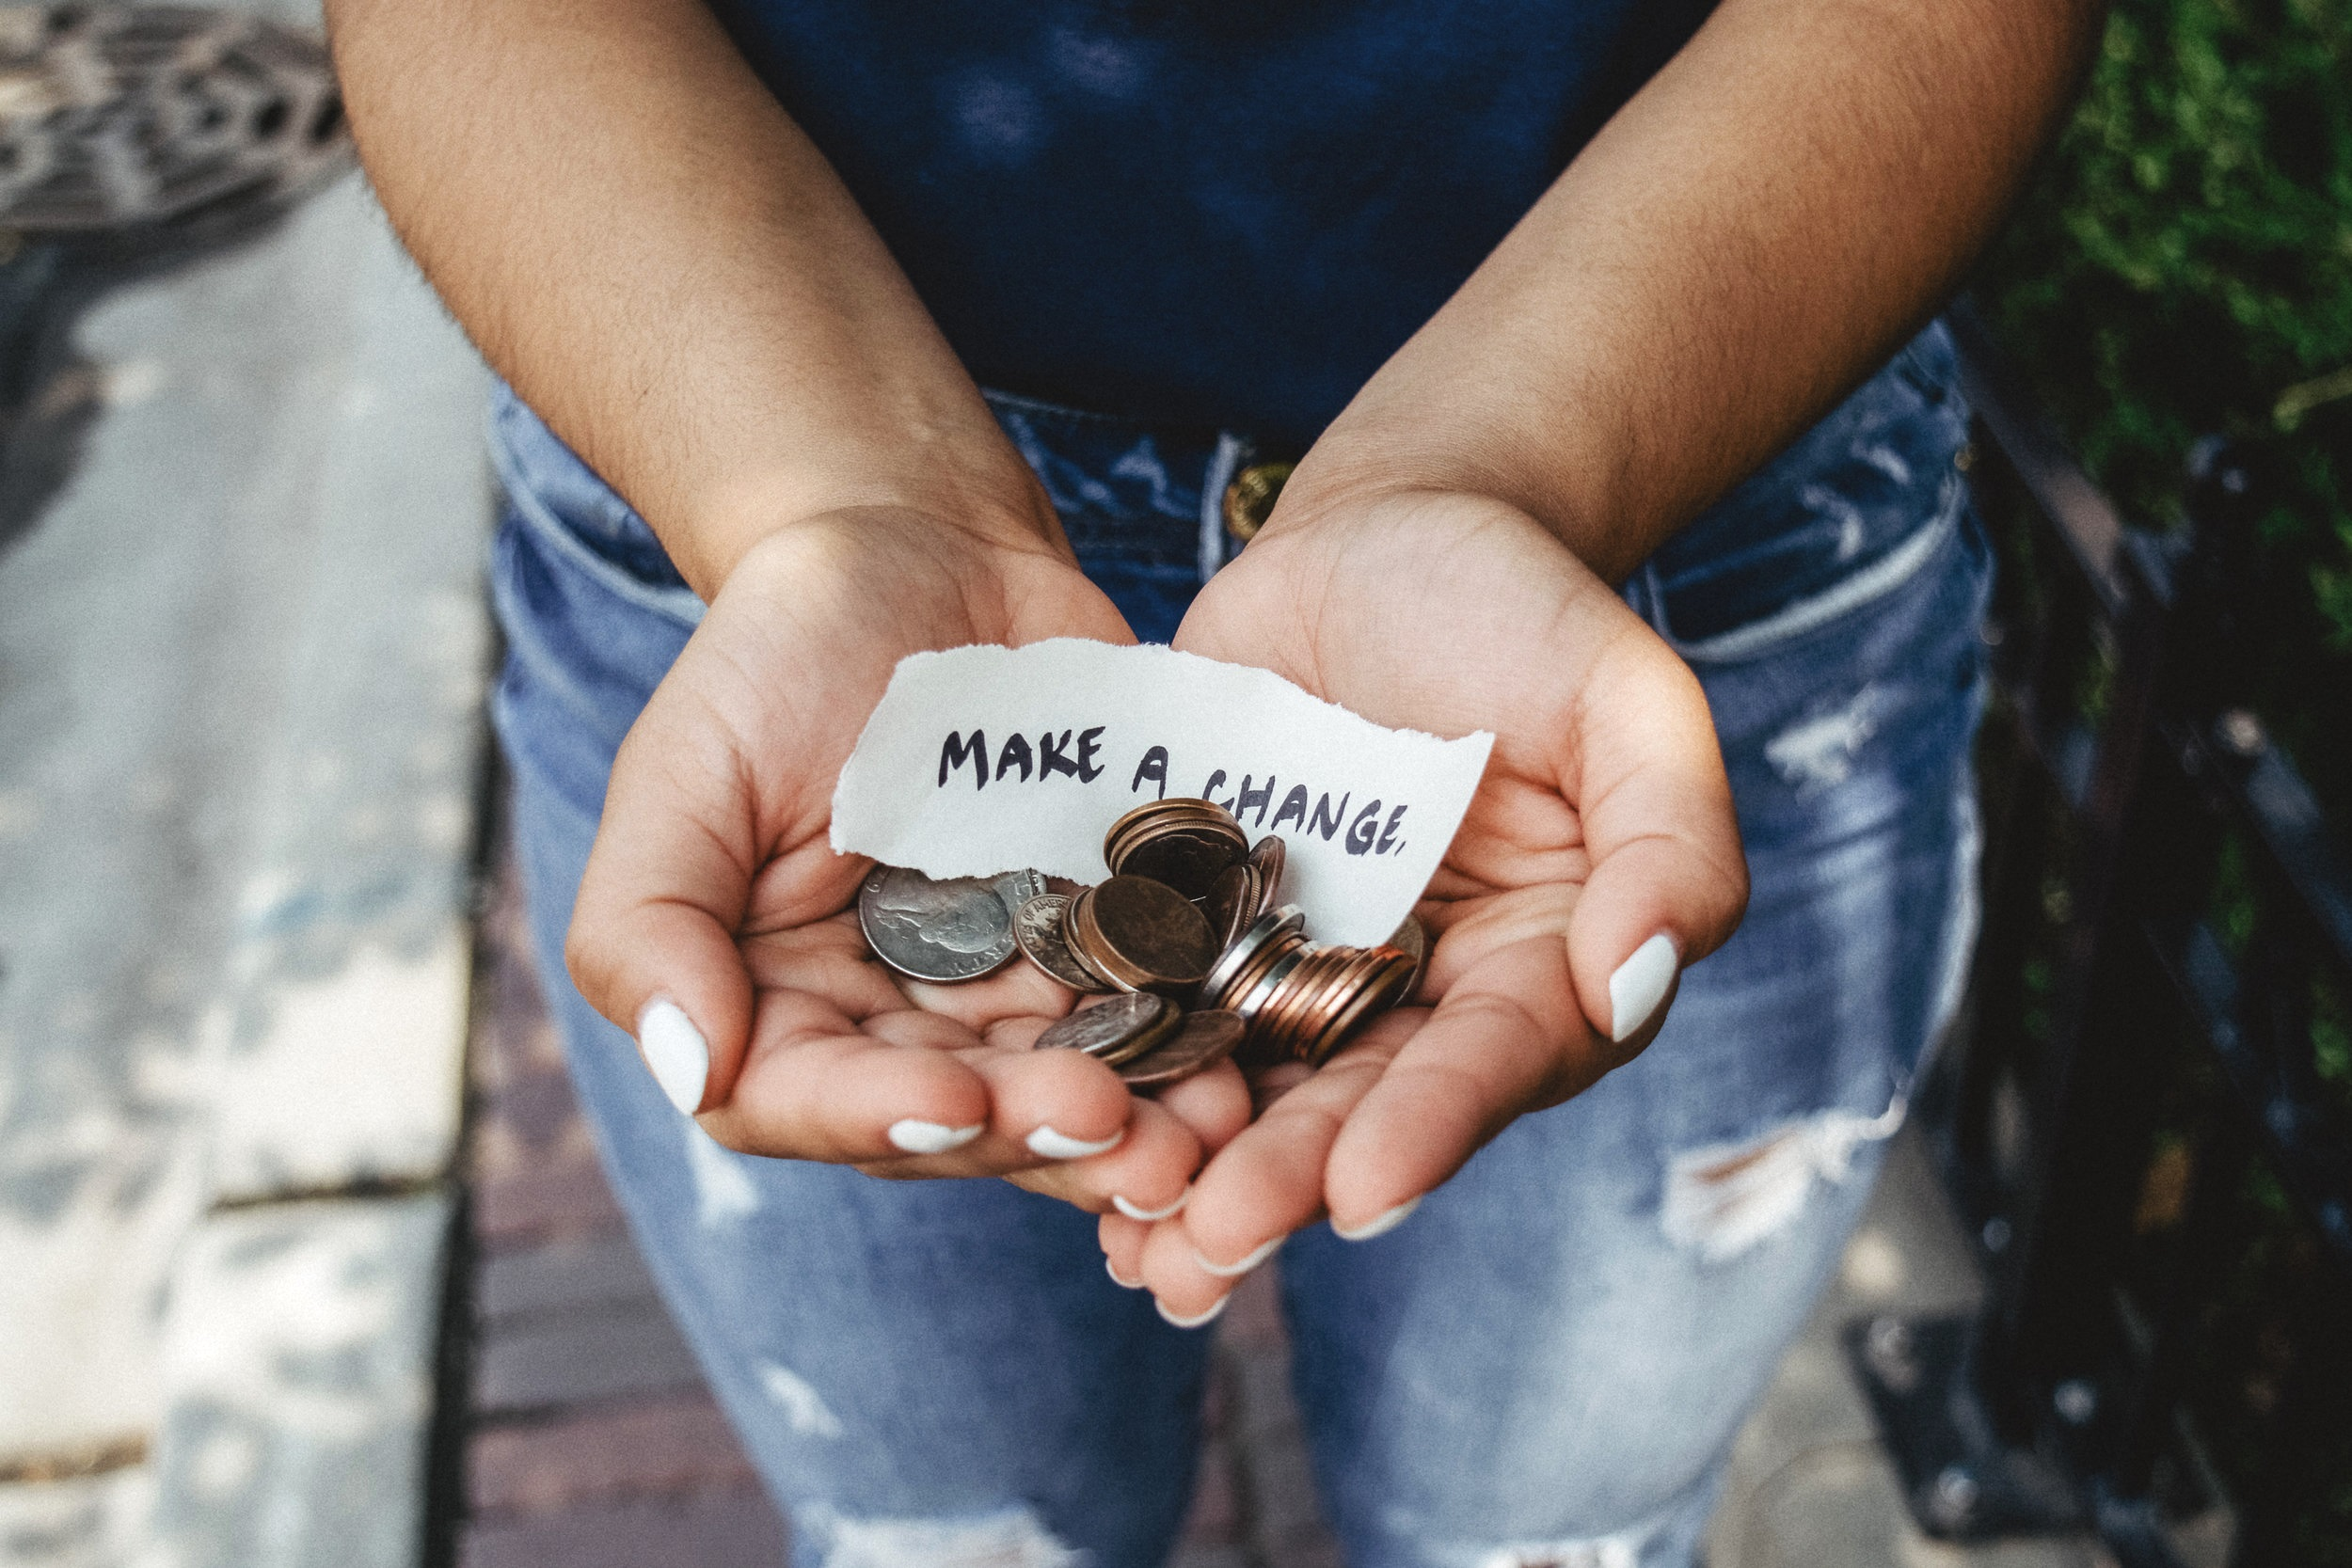 Donate Today - DONATIONS ARE USED TO FUND SHELTERS, AFTER CARE PROGRAMS, PREVENTION CAMPAIGNS, RESCUE MISSIONS, AND POLICE TRAINING.Click Here to Learn More About Donating